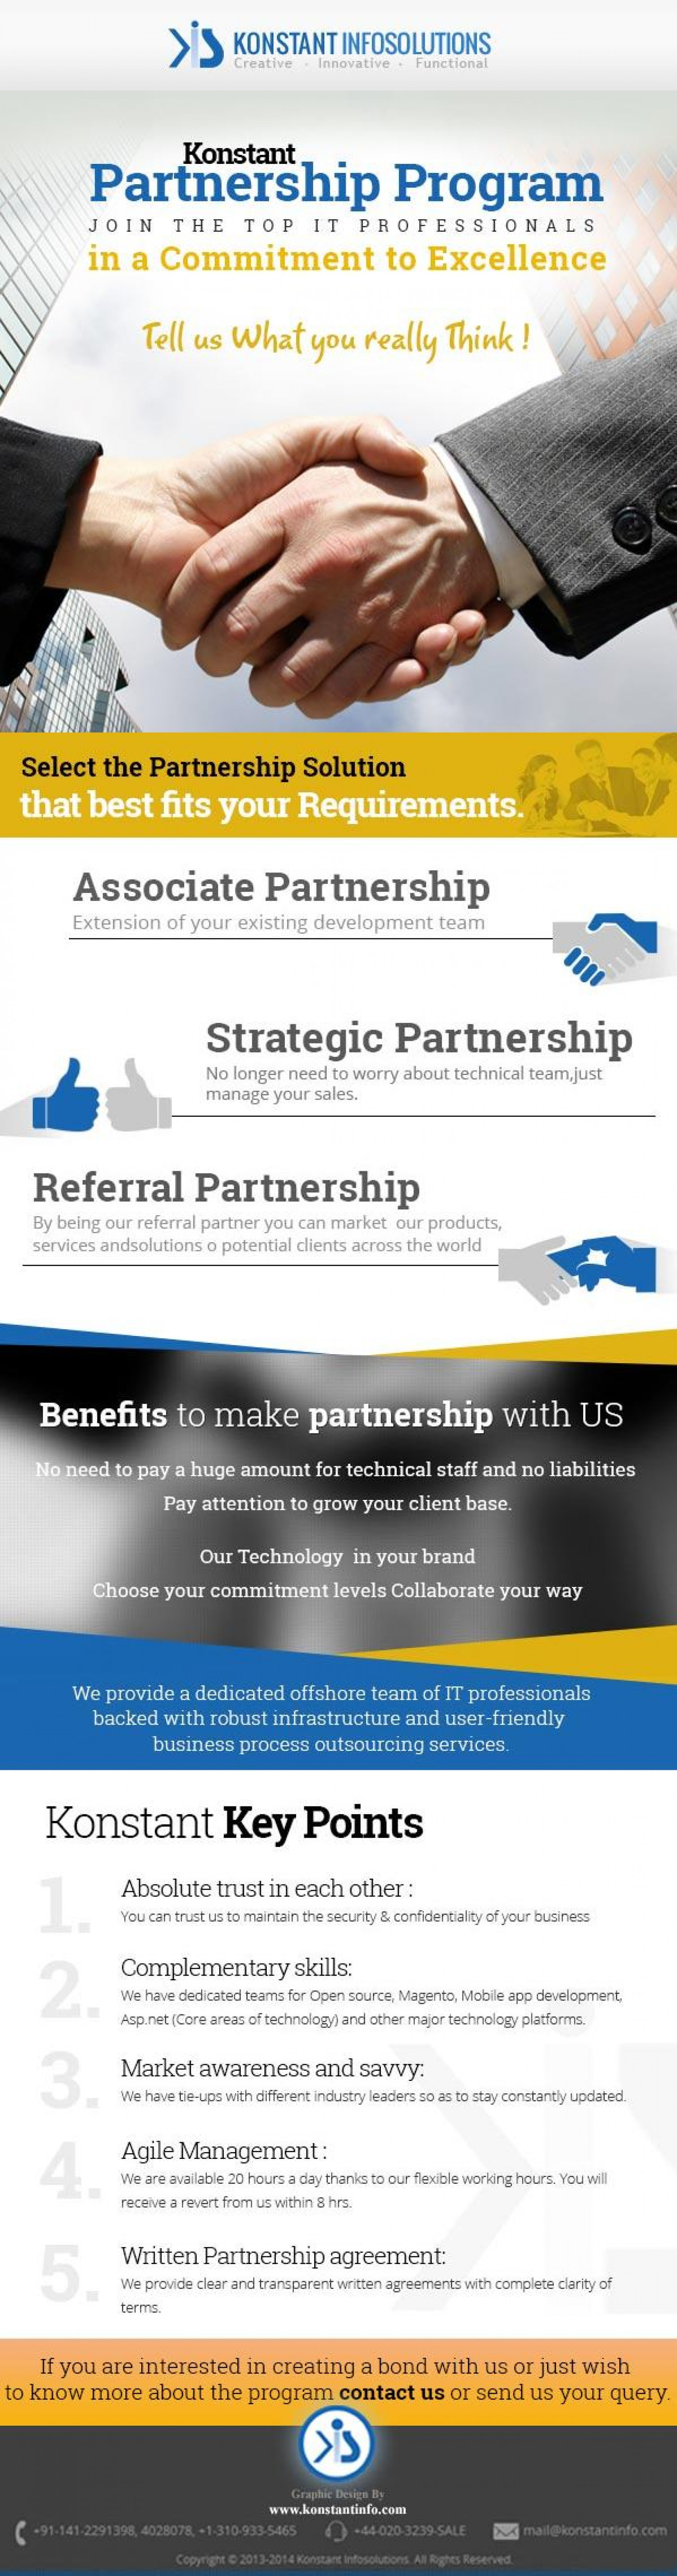 Konstant Partnership Program Infographic